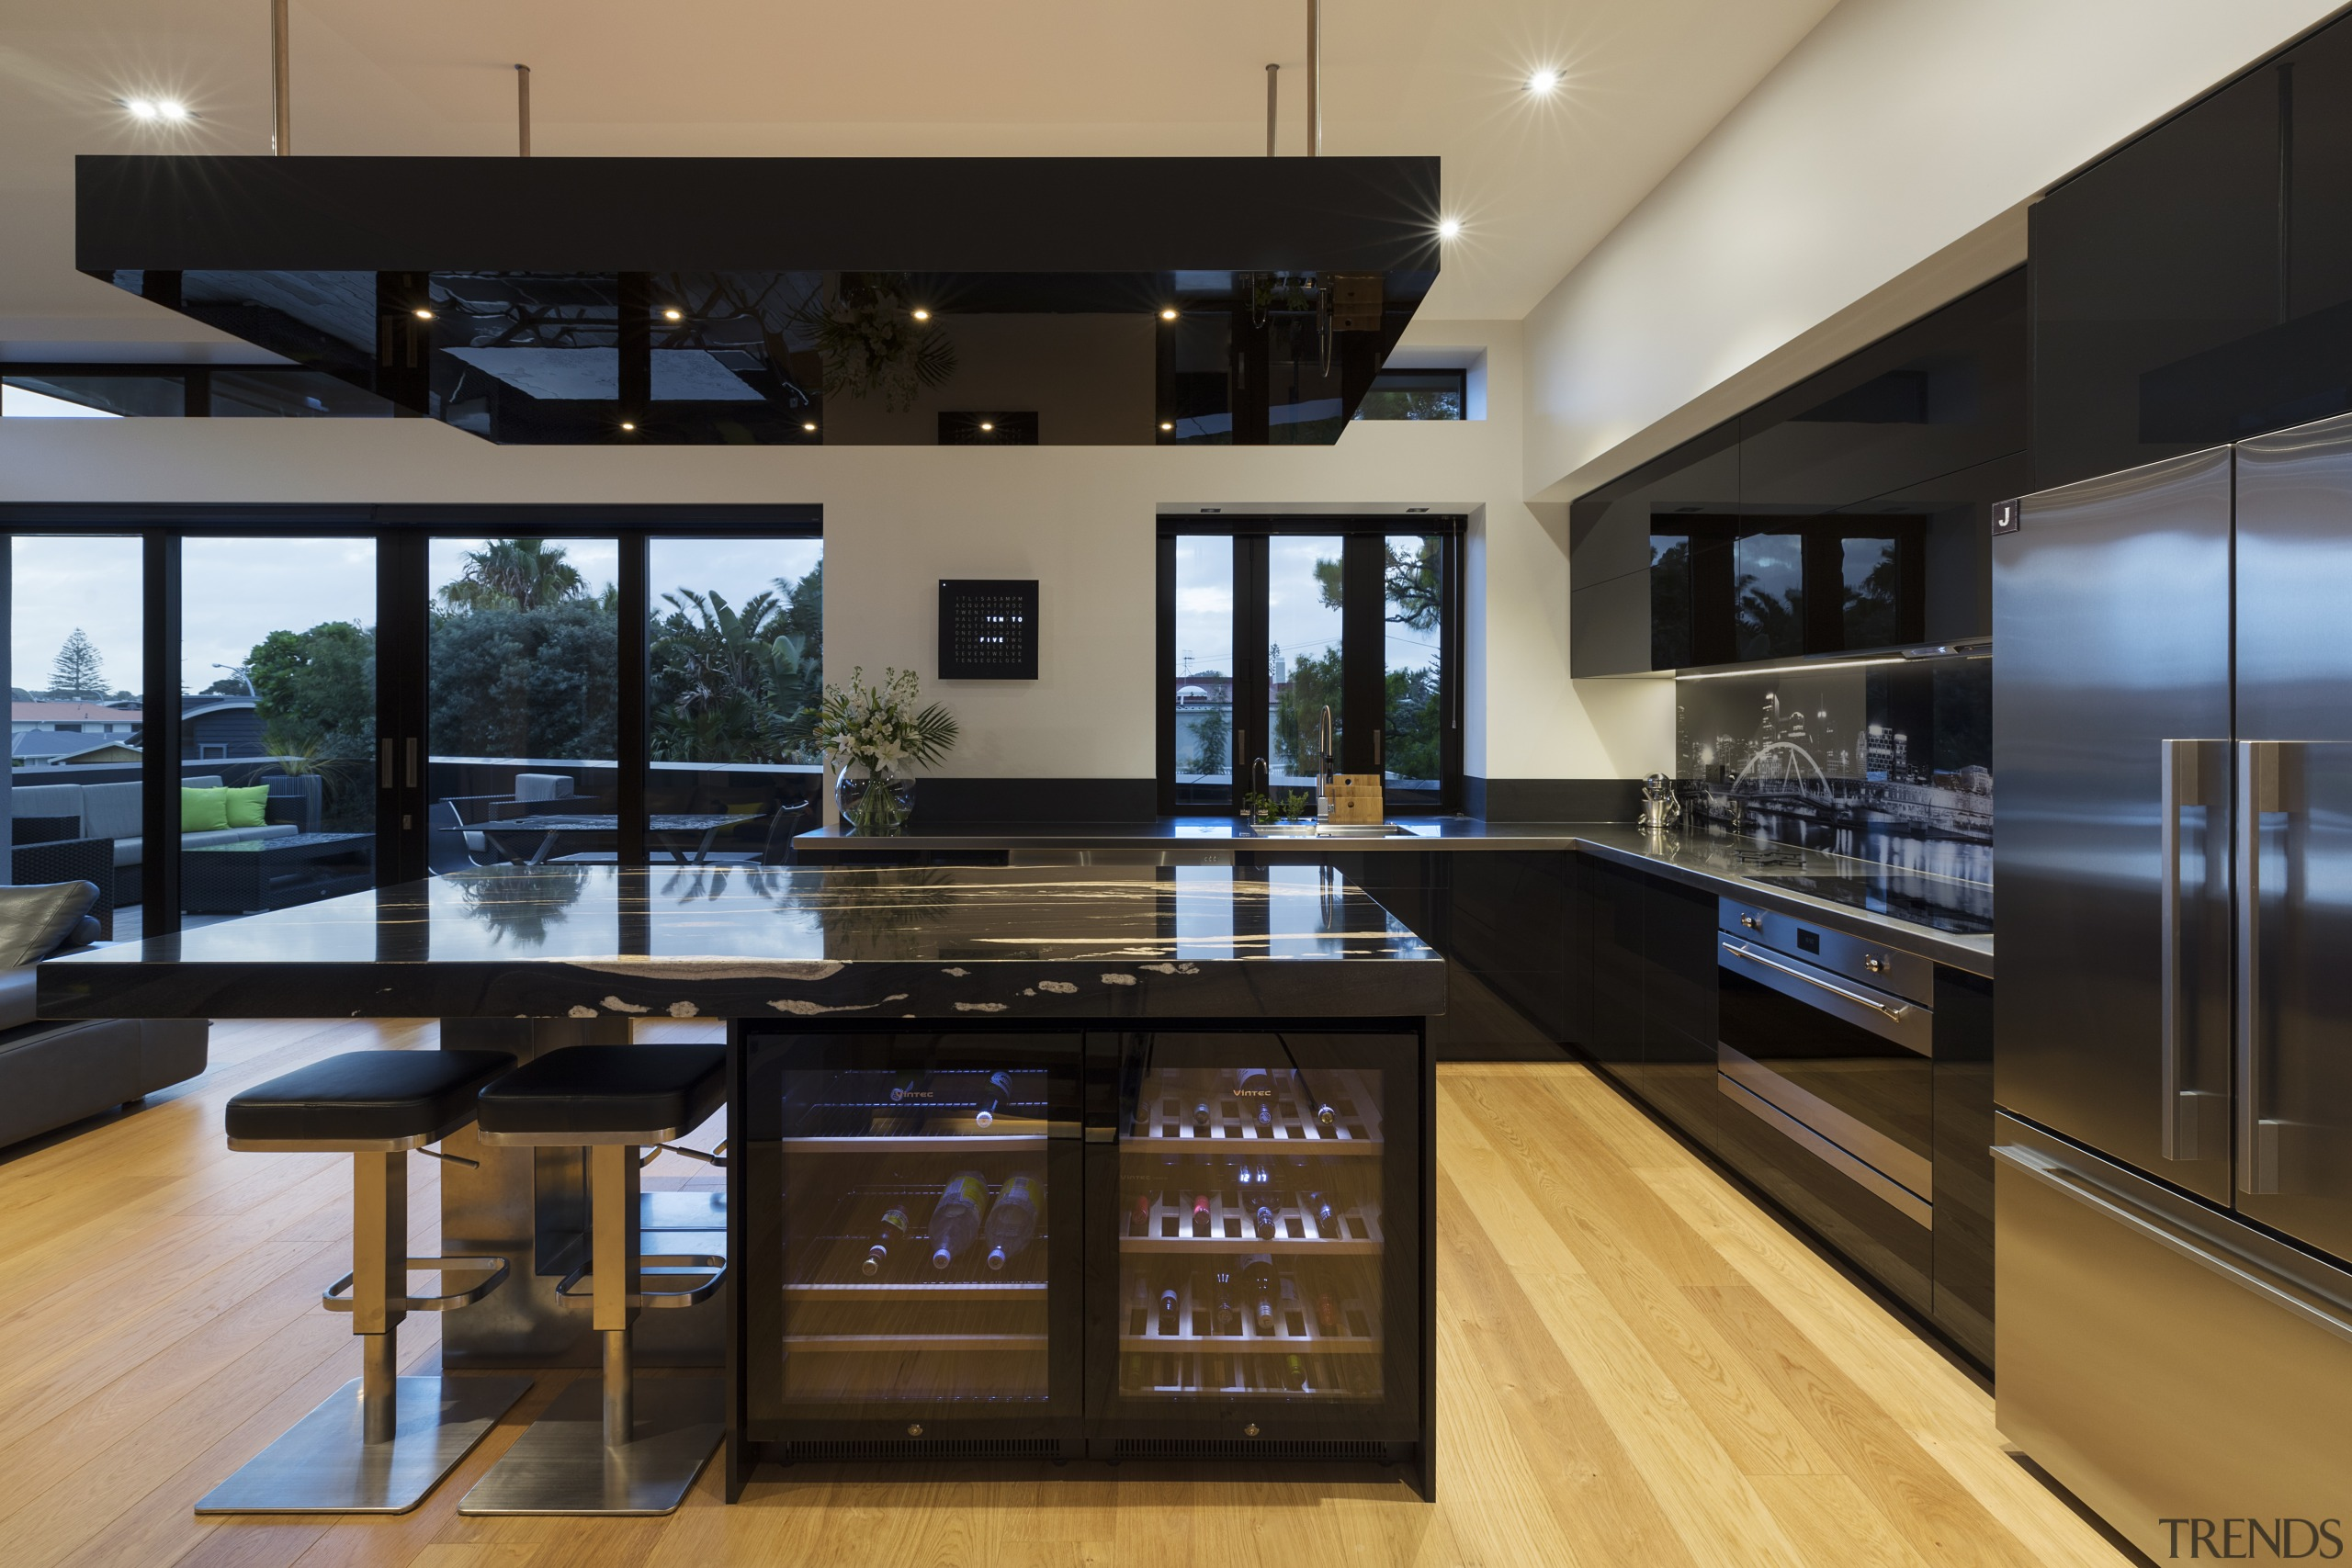 The owners wanted an entertainer's dream kitchen and countertop, interior design, kitchen, black